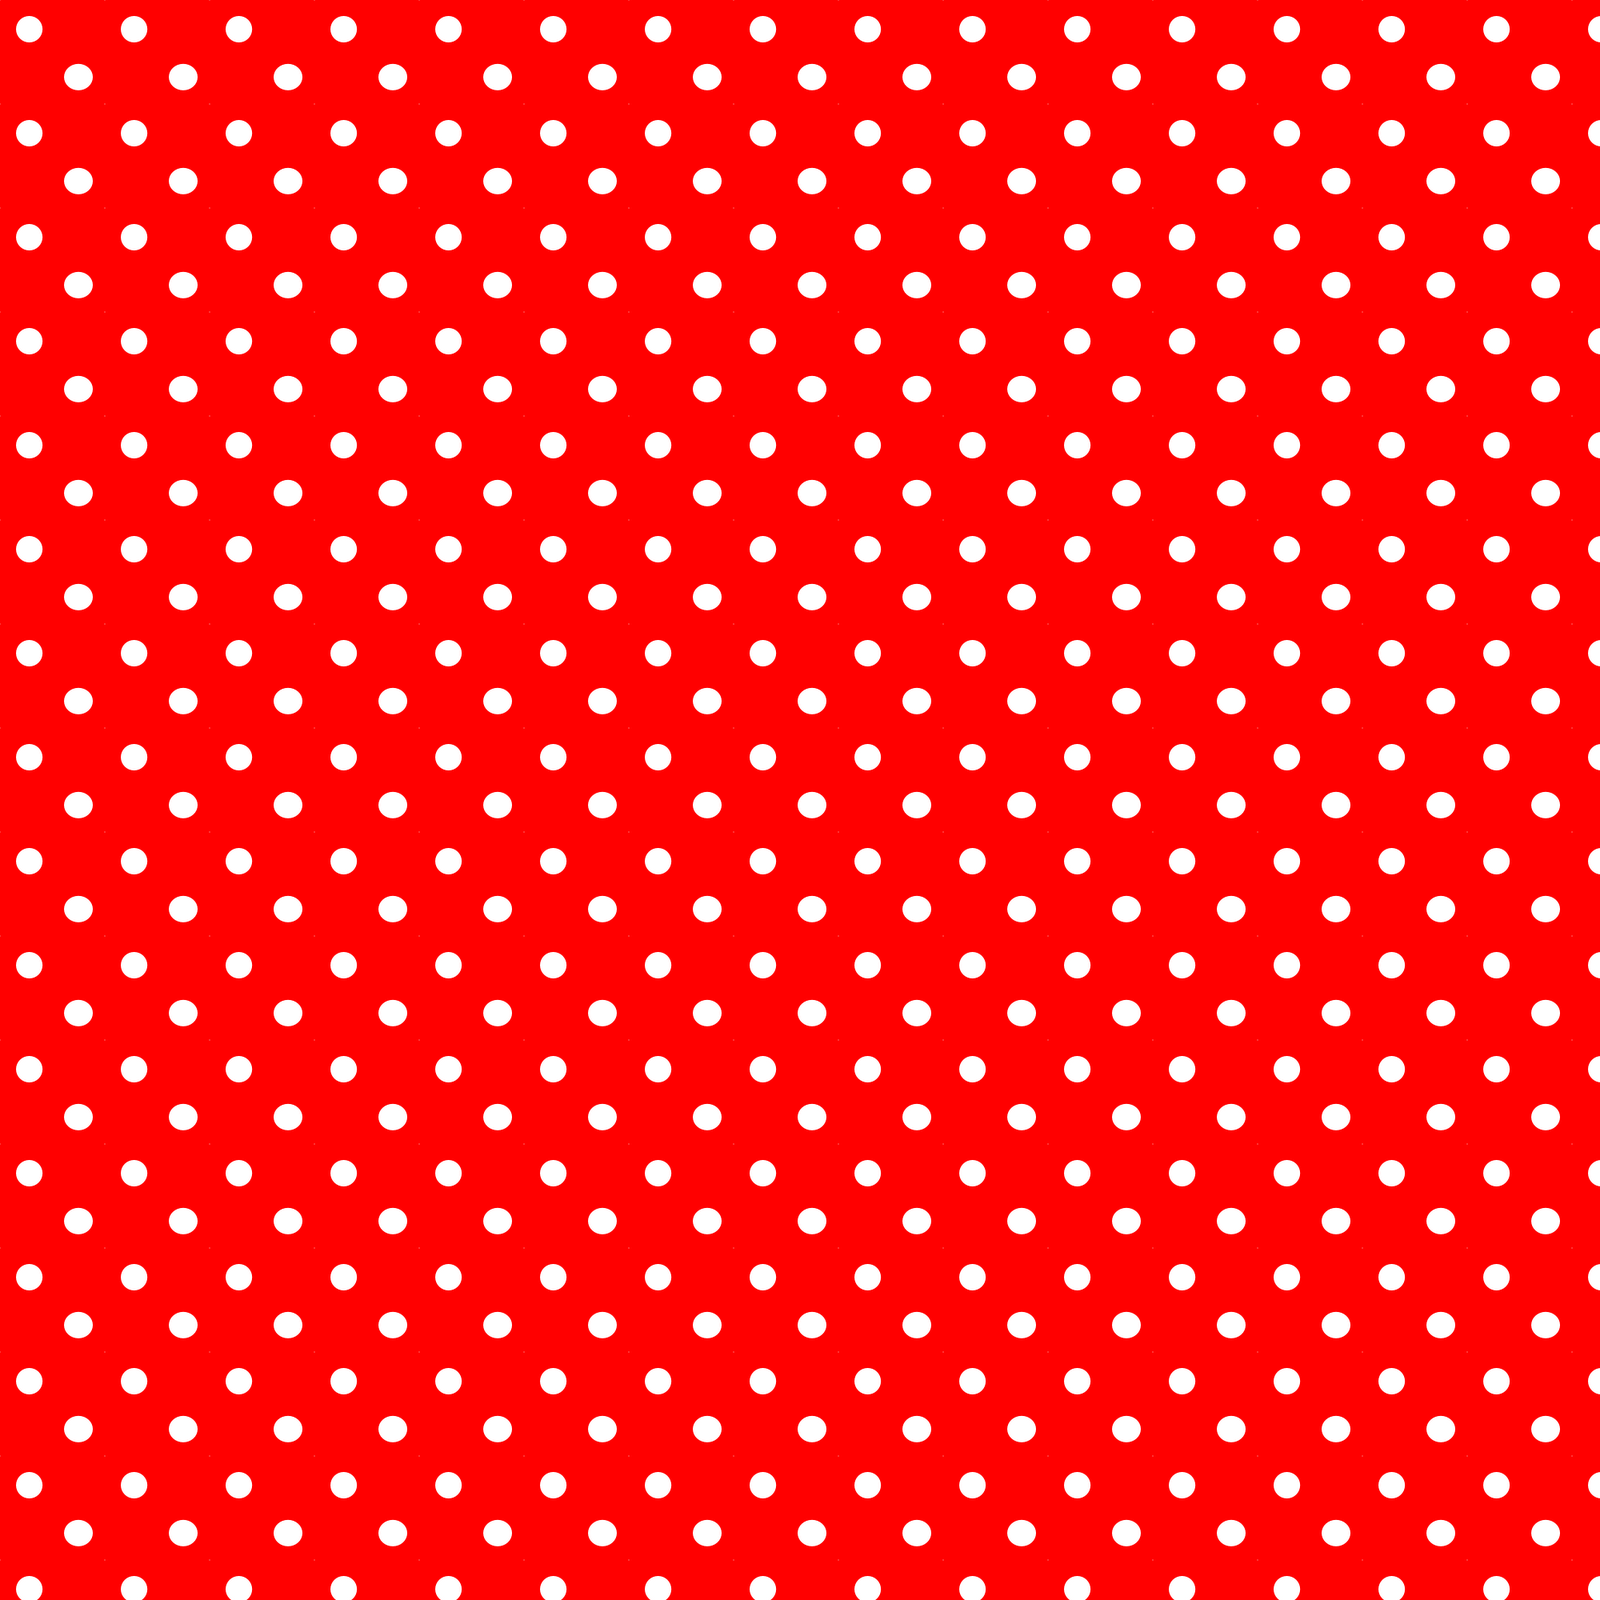 Free red polka dot clip art - Clip Art Library graphic royalty free library